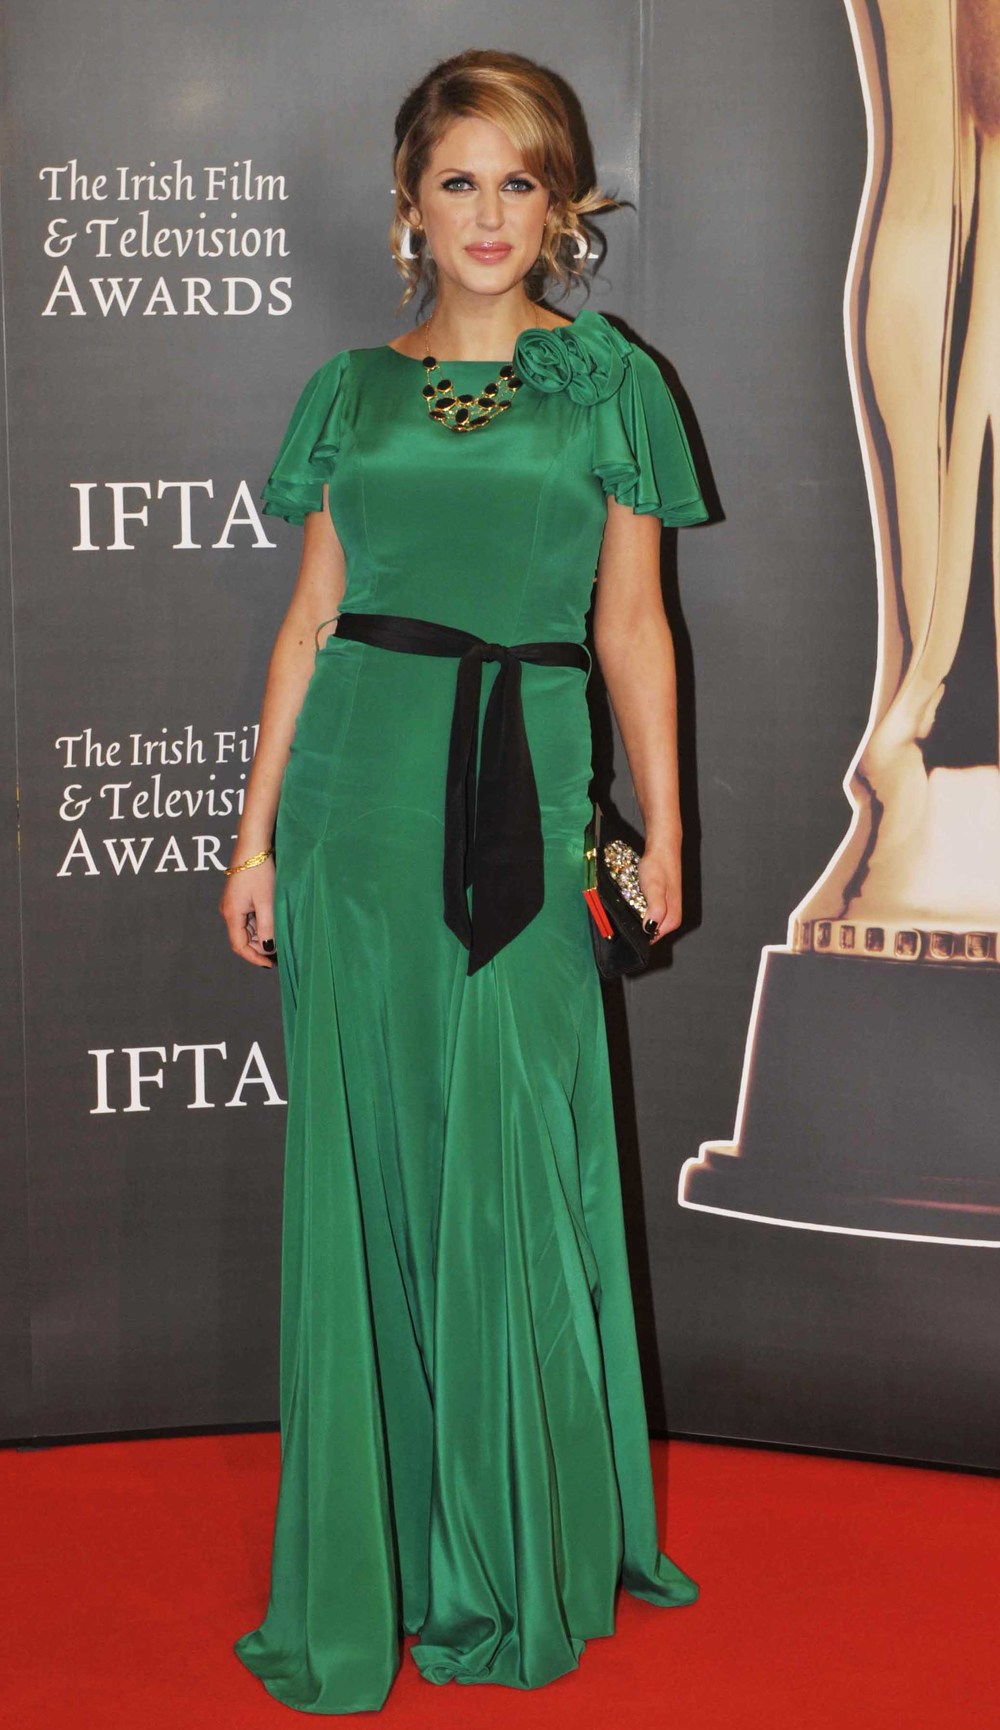 907 IFTA Awards.jpg